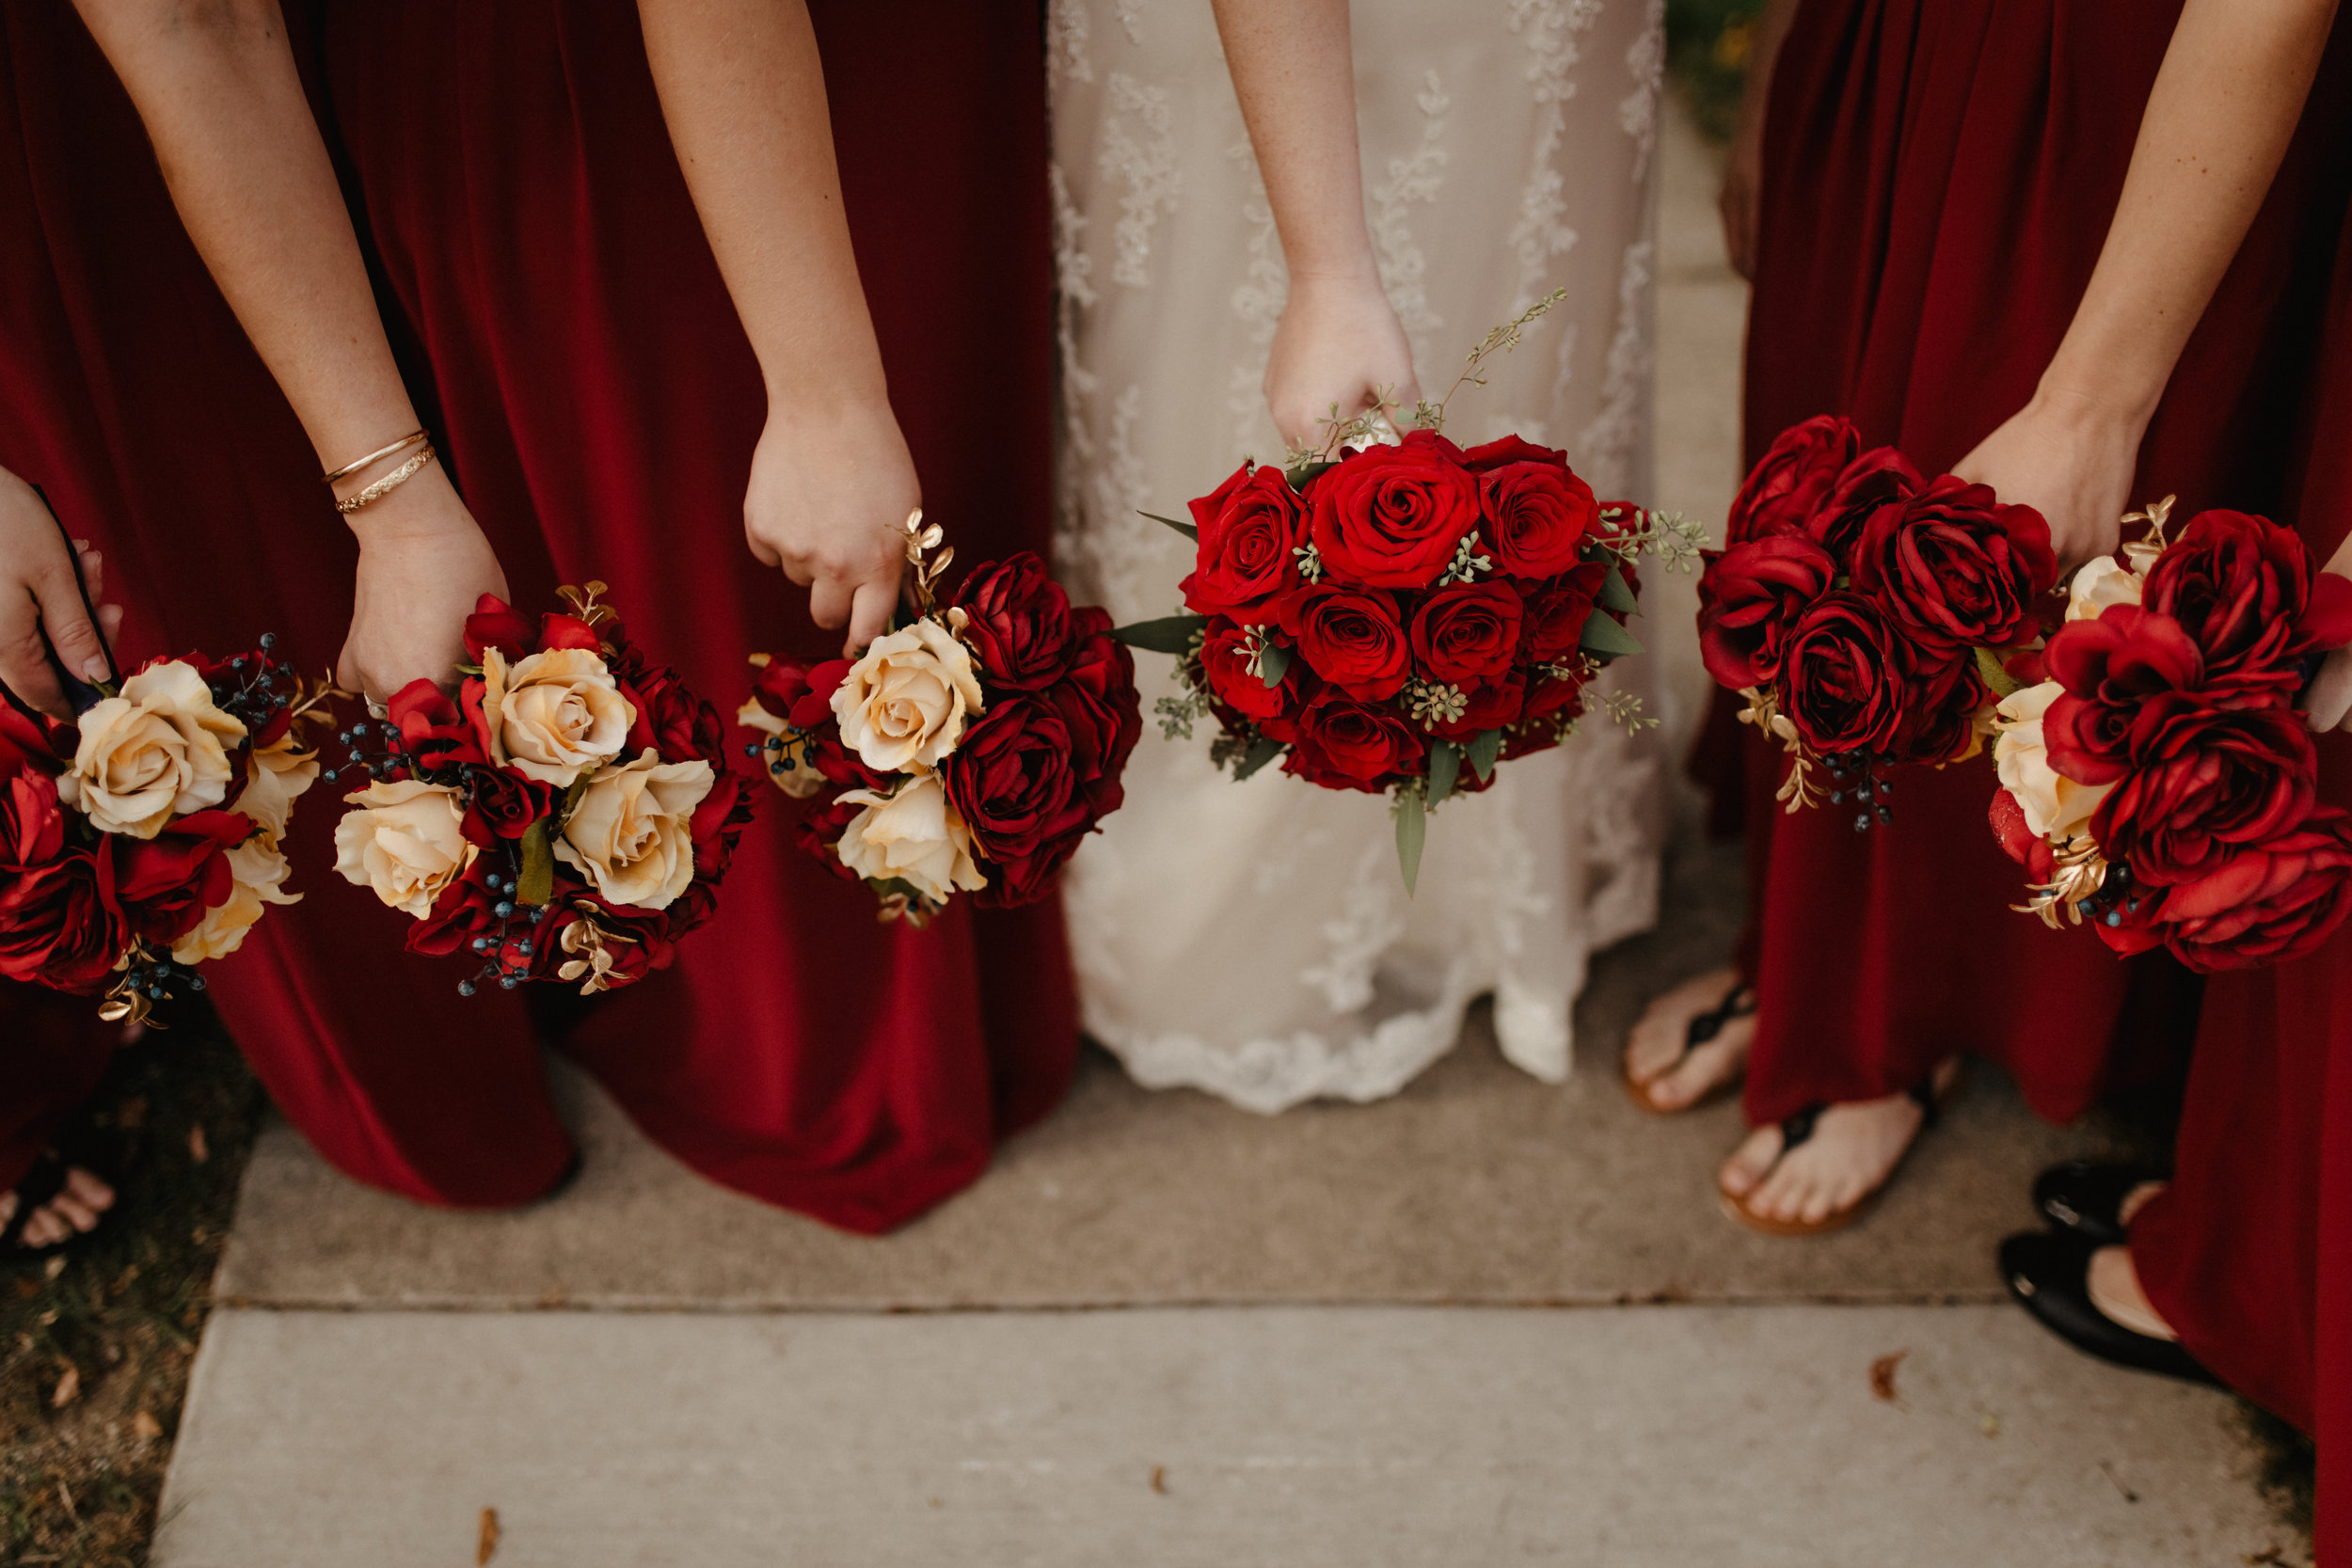 ShadowShinePictures-RachelRyan-Avery-Wedding-Photography-494.jpg